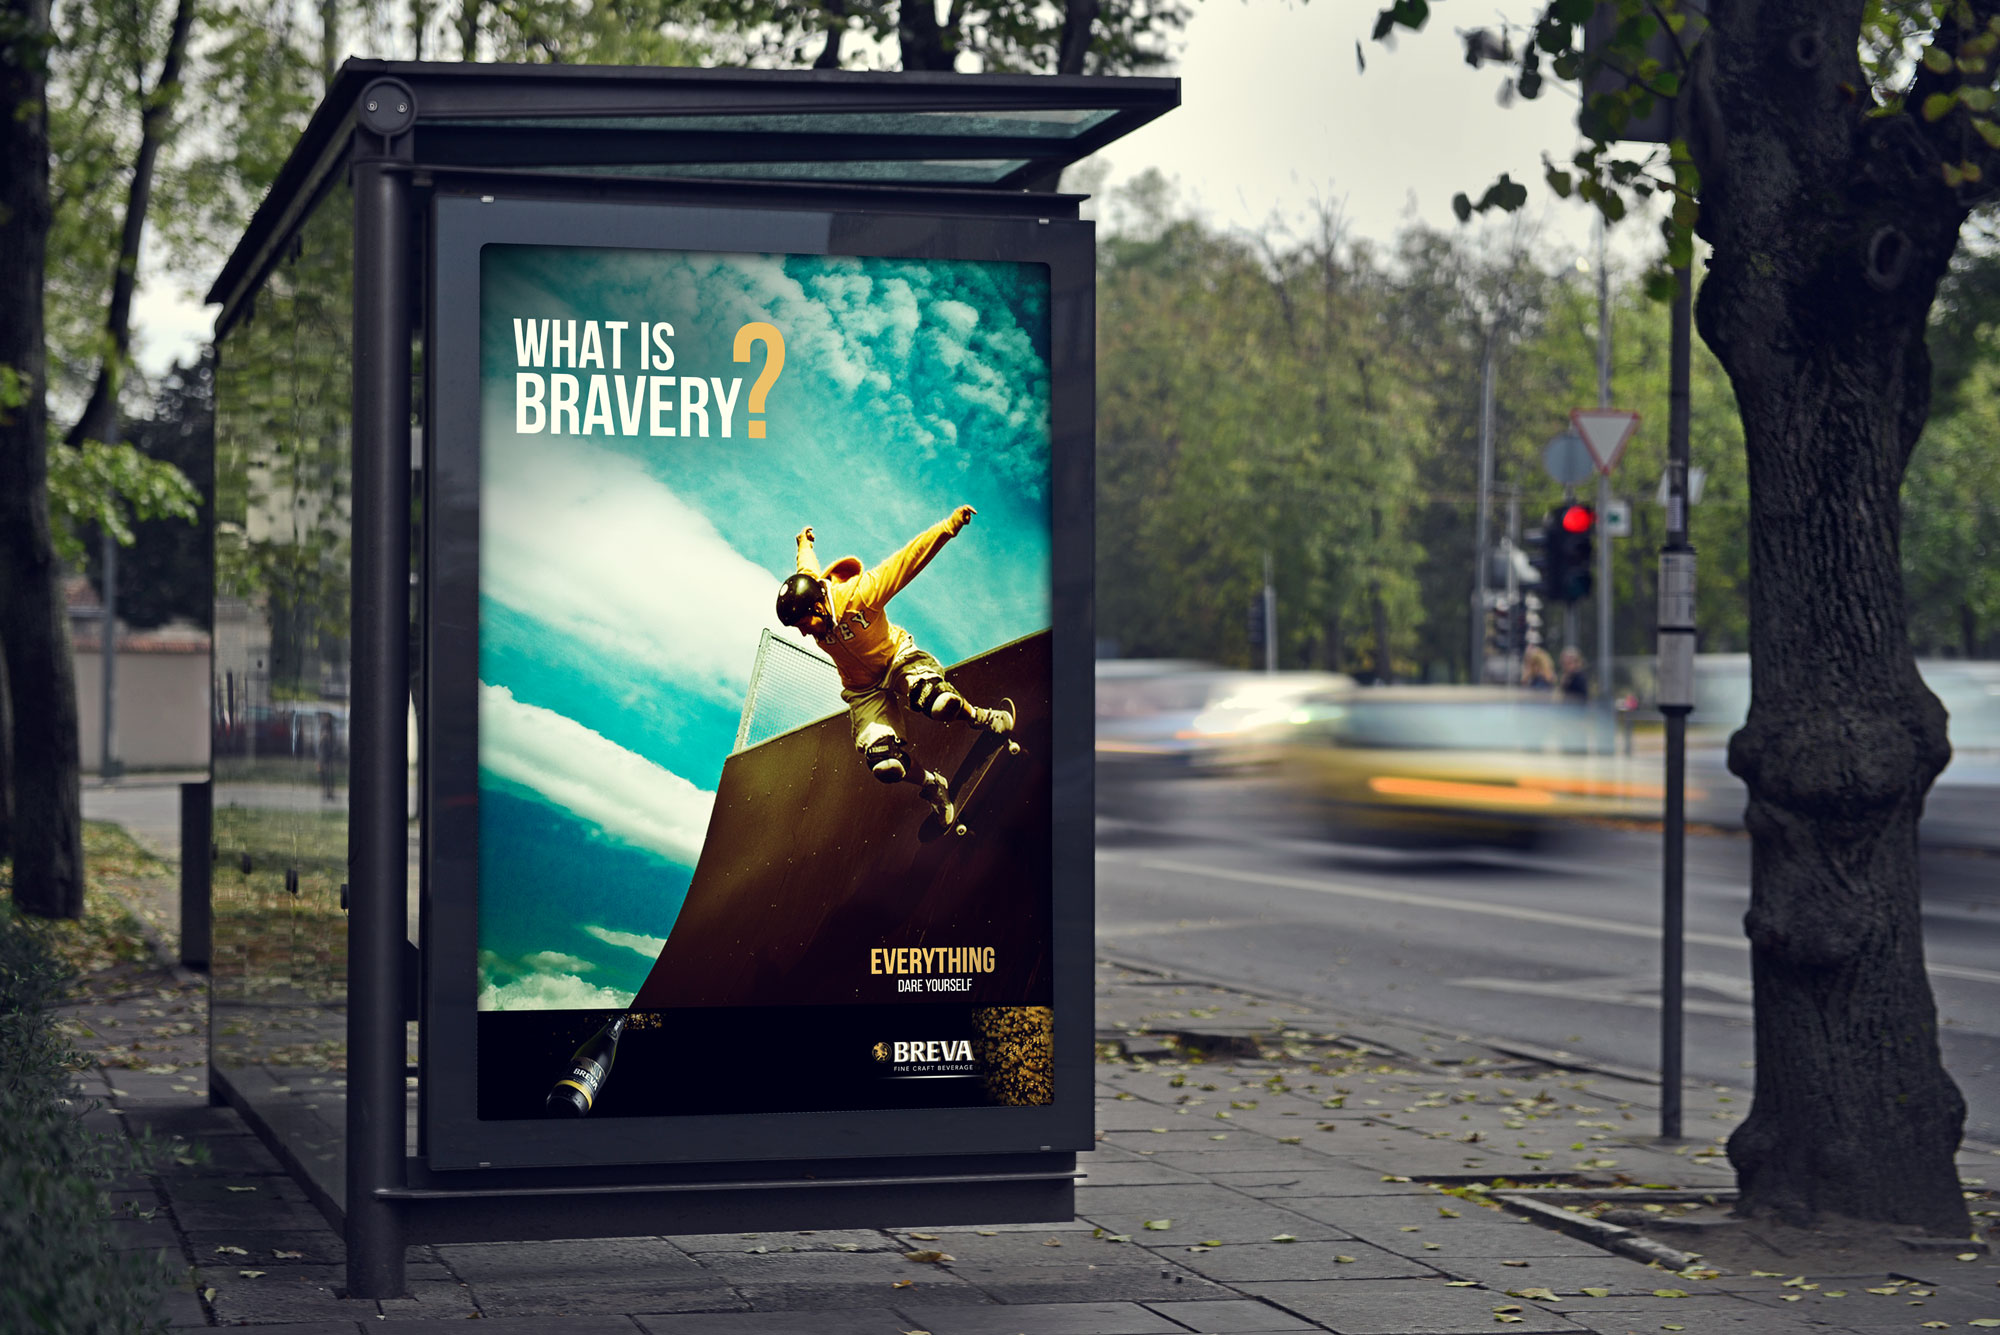 Poster design applied to a bus shelter